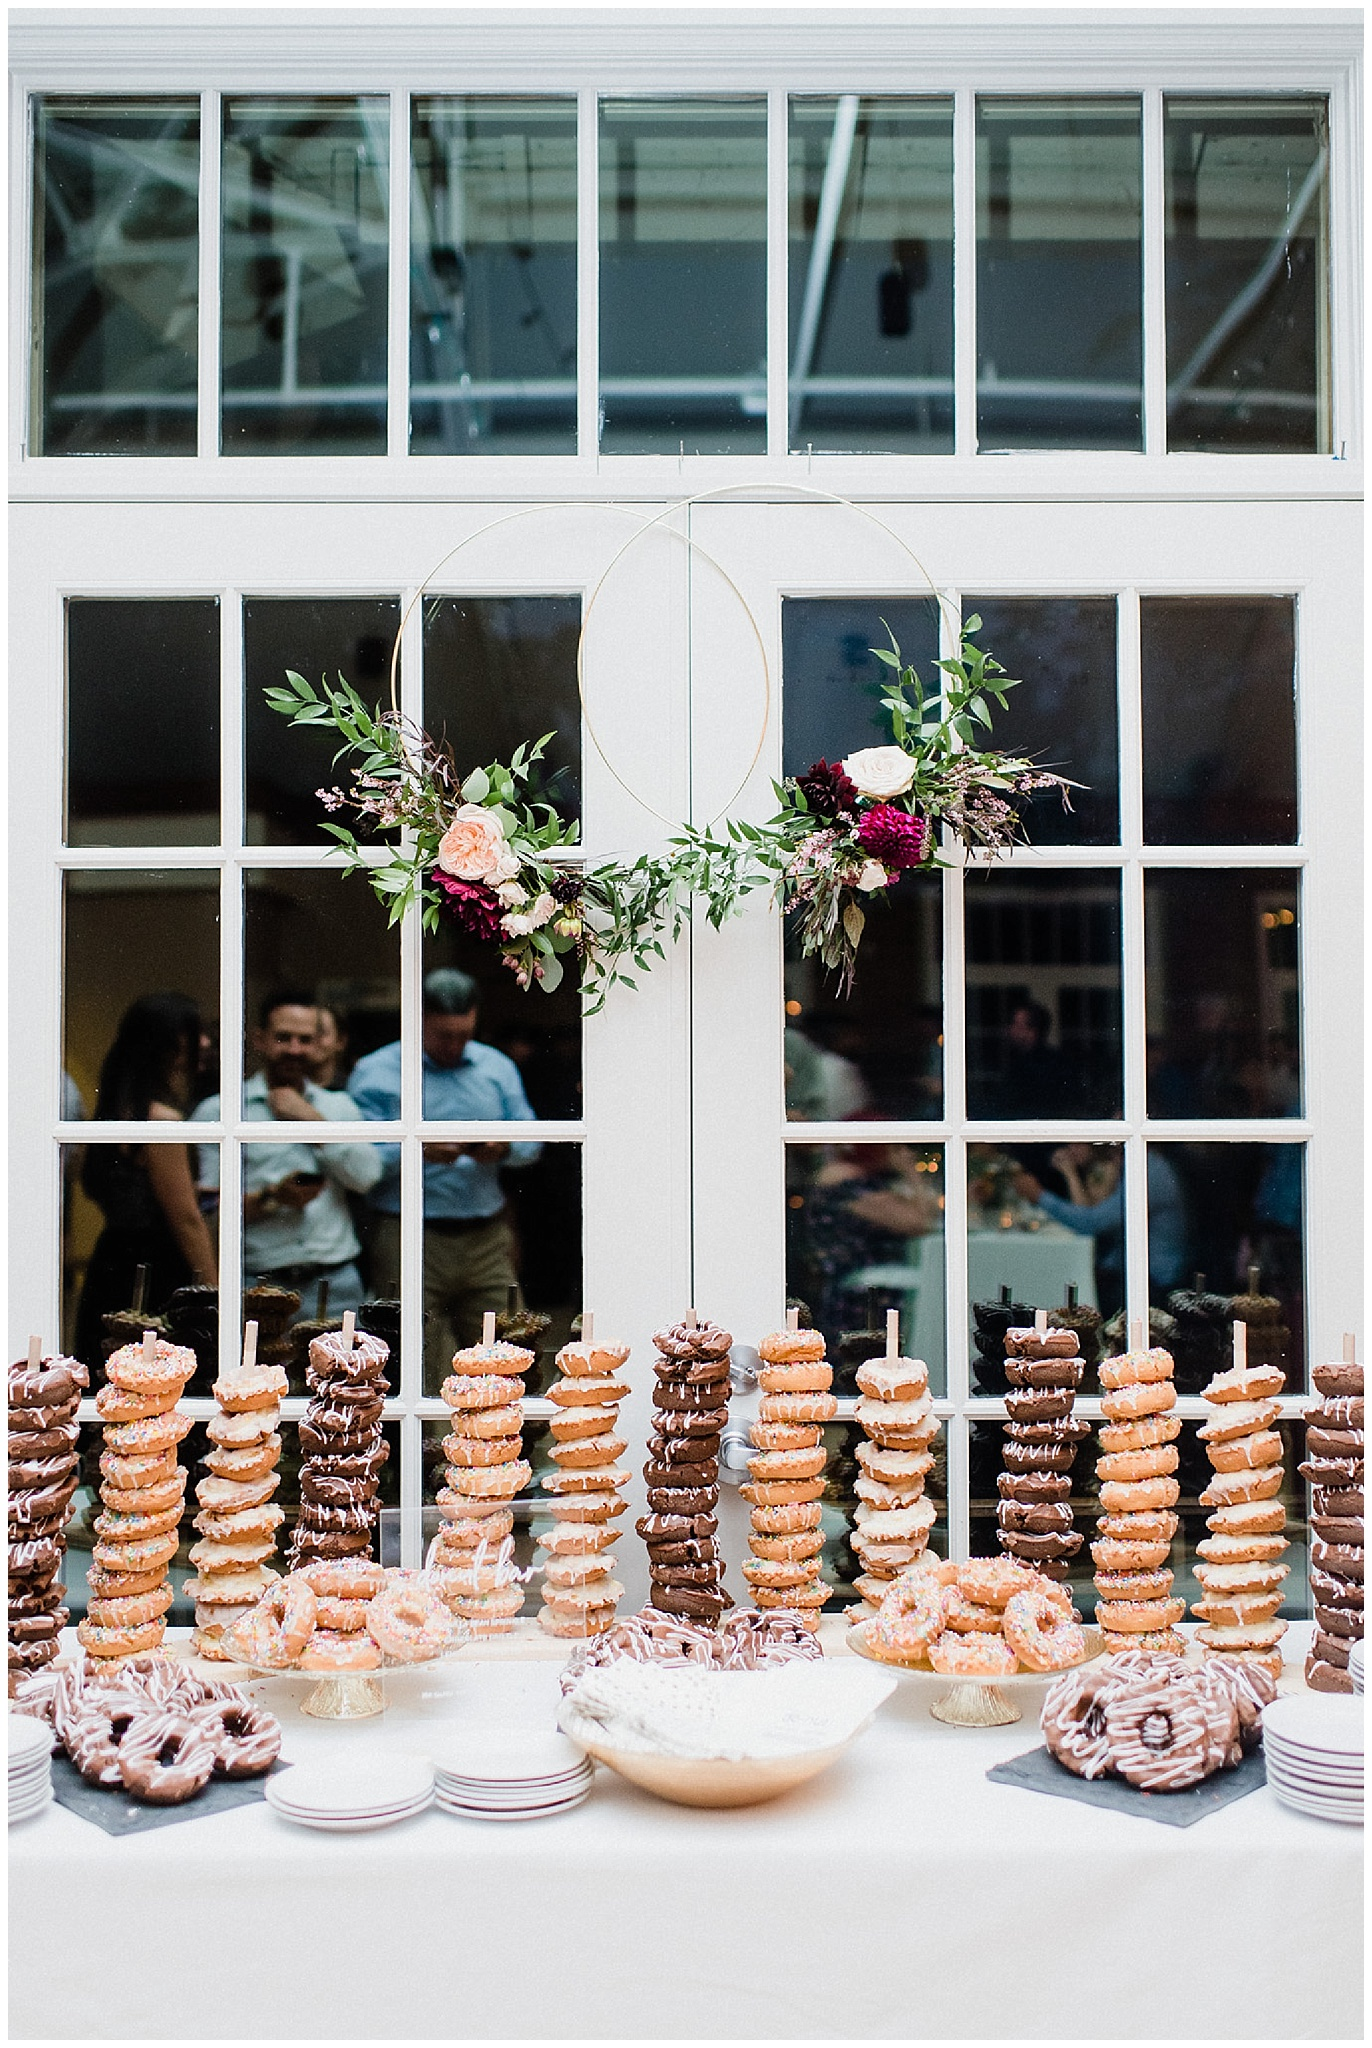 Donut Bar | Victoria Park Pavilion wedding by Jenn Kavanagh Photography